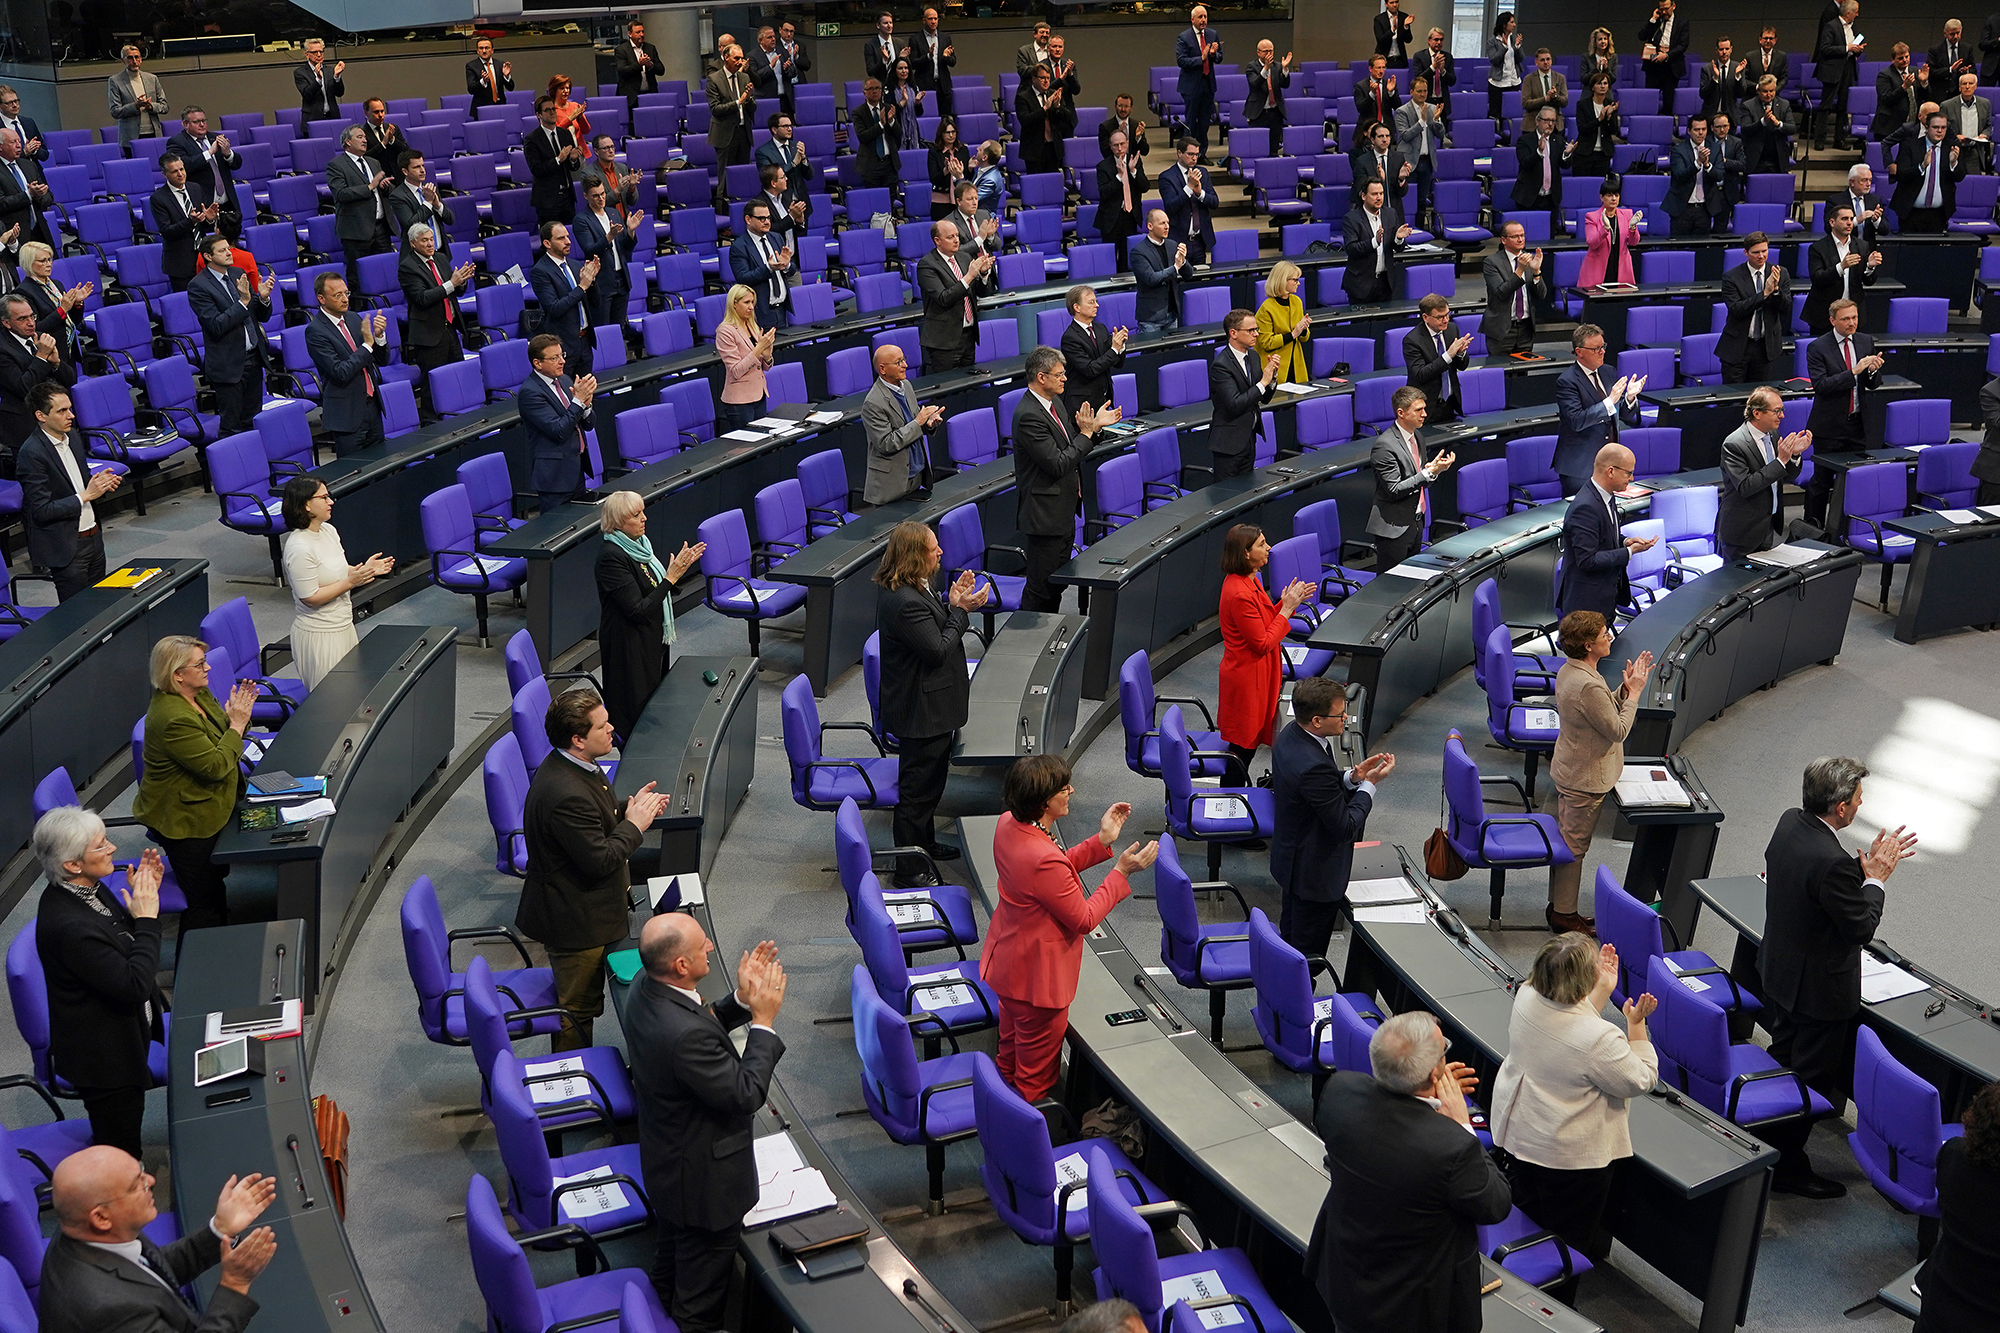 Members of the Bundestag rise to applaud medical and emergency workers on the front line of the nationwide struggle against the coronavirus prior to debates and the likely passing of a massive federal financial aid package to shore Germany up against the effects of the virus on March 25 in Berlin.